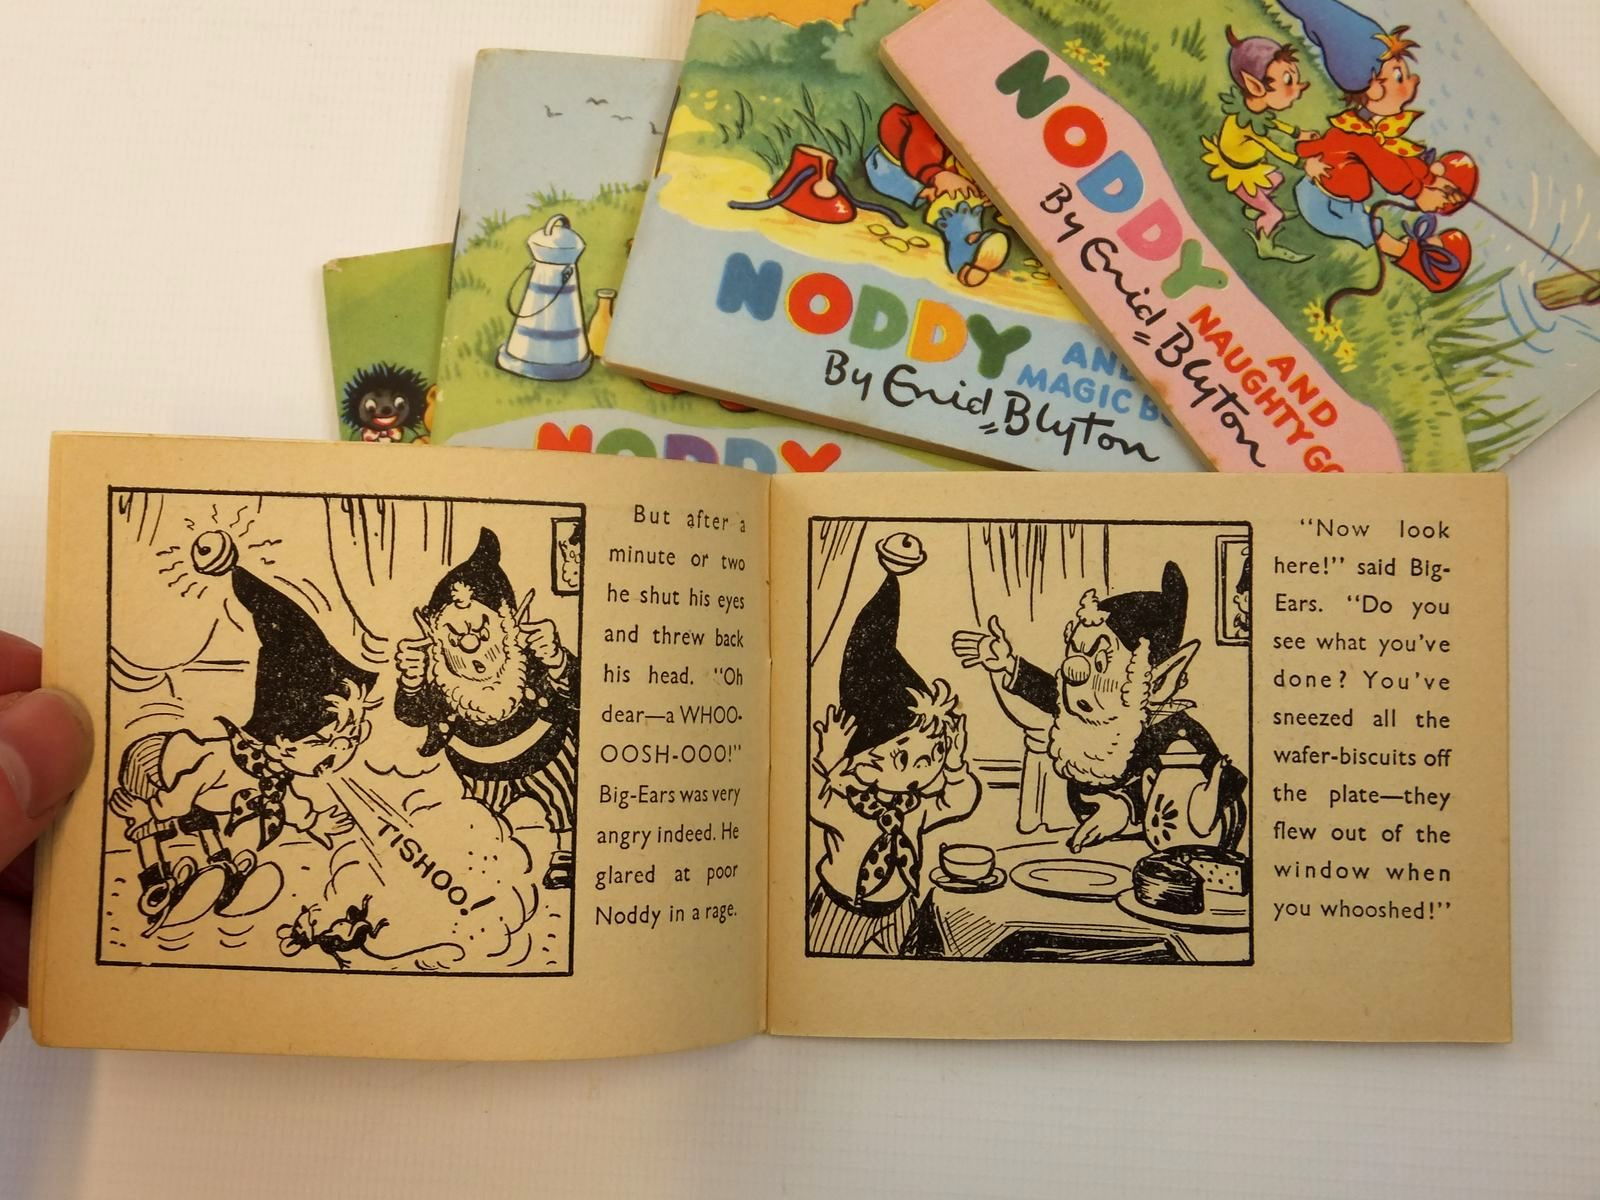 Photo of NODDY'S TOY STATION OF BOOKS written by Blyton, Enid published by Sampson Low, Marston & Co. Ltd., Dennis Dobson Ltd. (STOCK CODE: 2121857)  for sale by Stella & Rose's Books